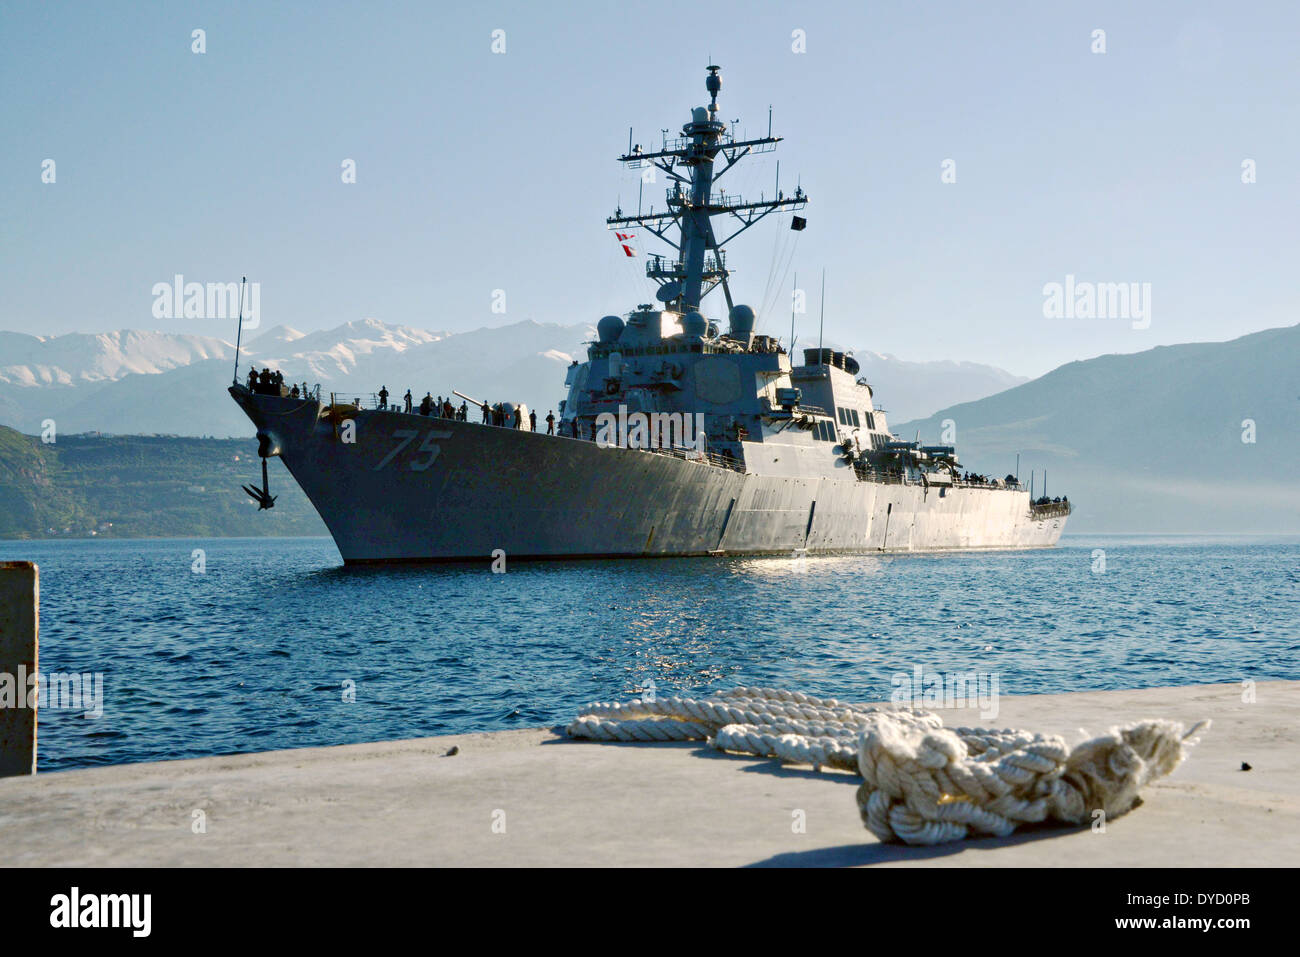 US Navy Arleigh Burke-class guided-missile destroyer USS Donald Cook arrives at Marathi NATO pier facility for a port visit March 18, 2014 in Souda Bay, Greece. - Stock Image